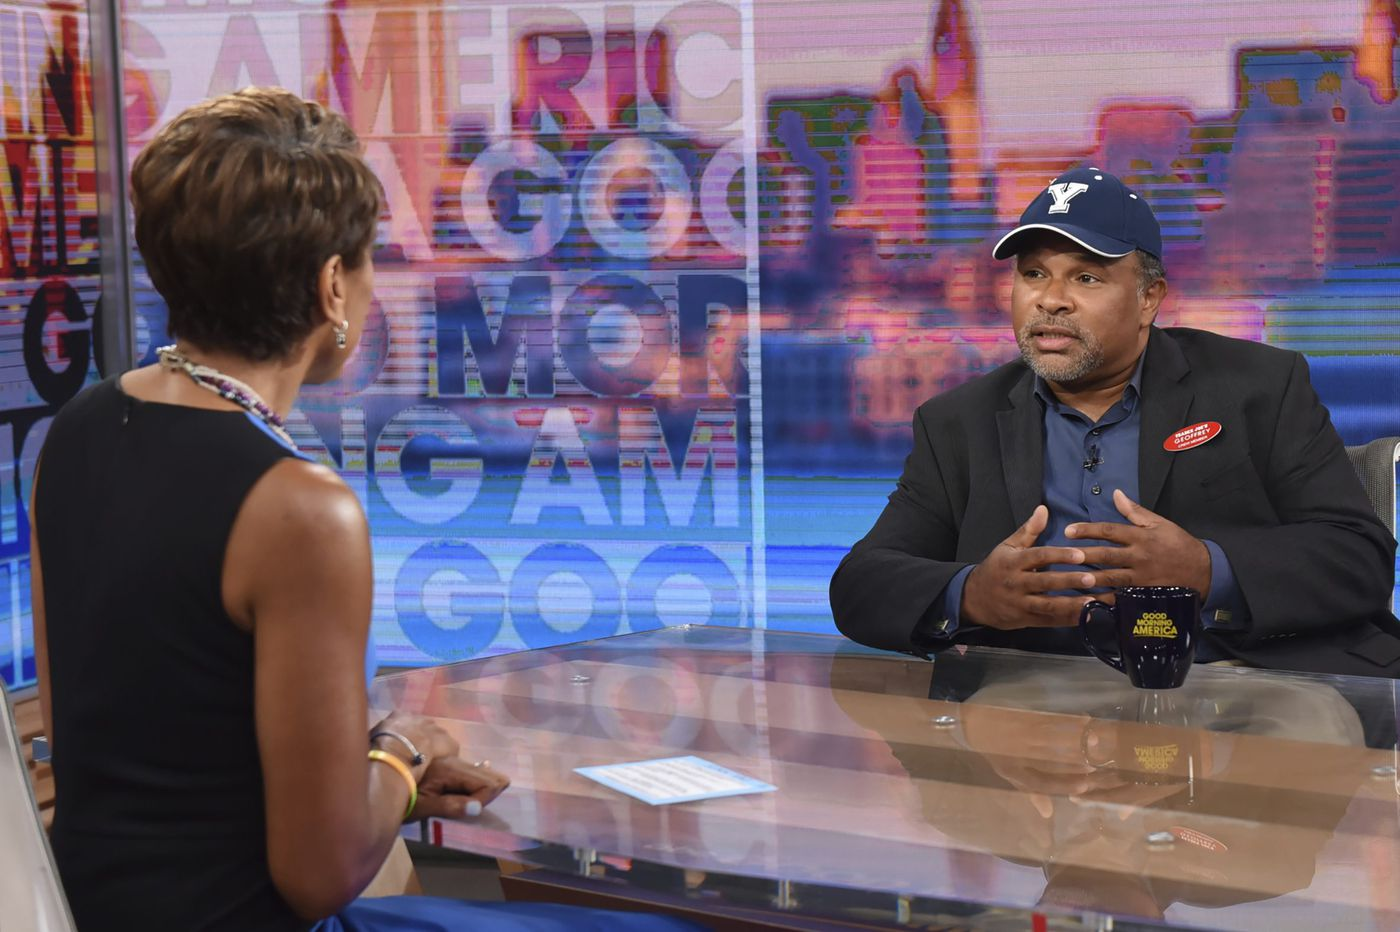 'Cosby Show' actor shamed for his side gig: Another indignity for the creative class | Opinion